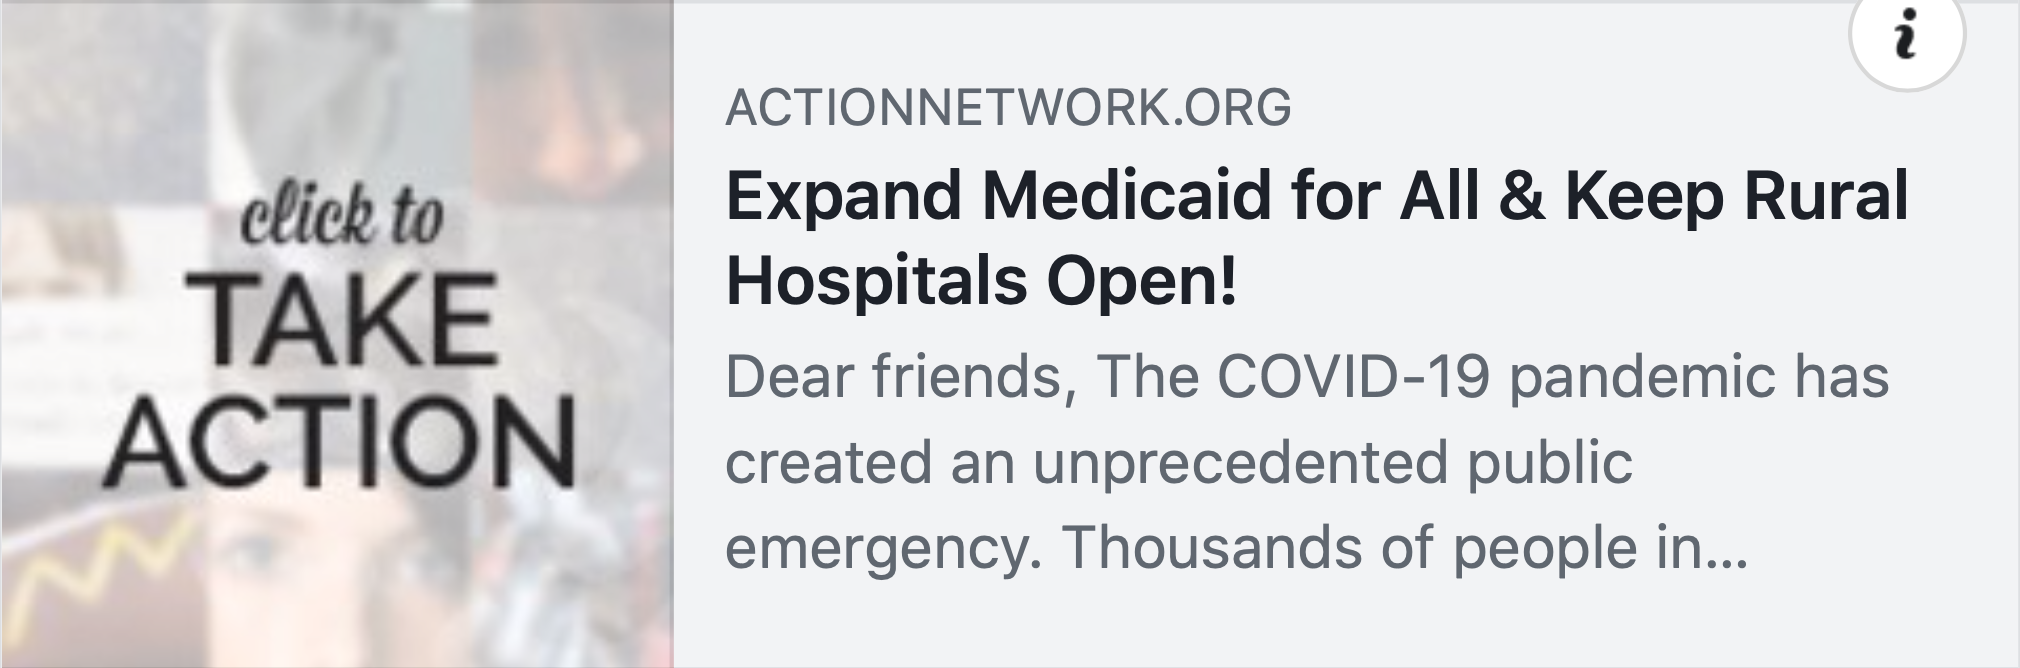 Expand Medicaid for All and Keep Rural Hospitals Open